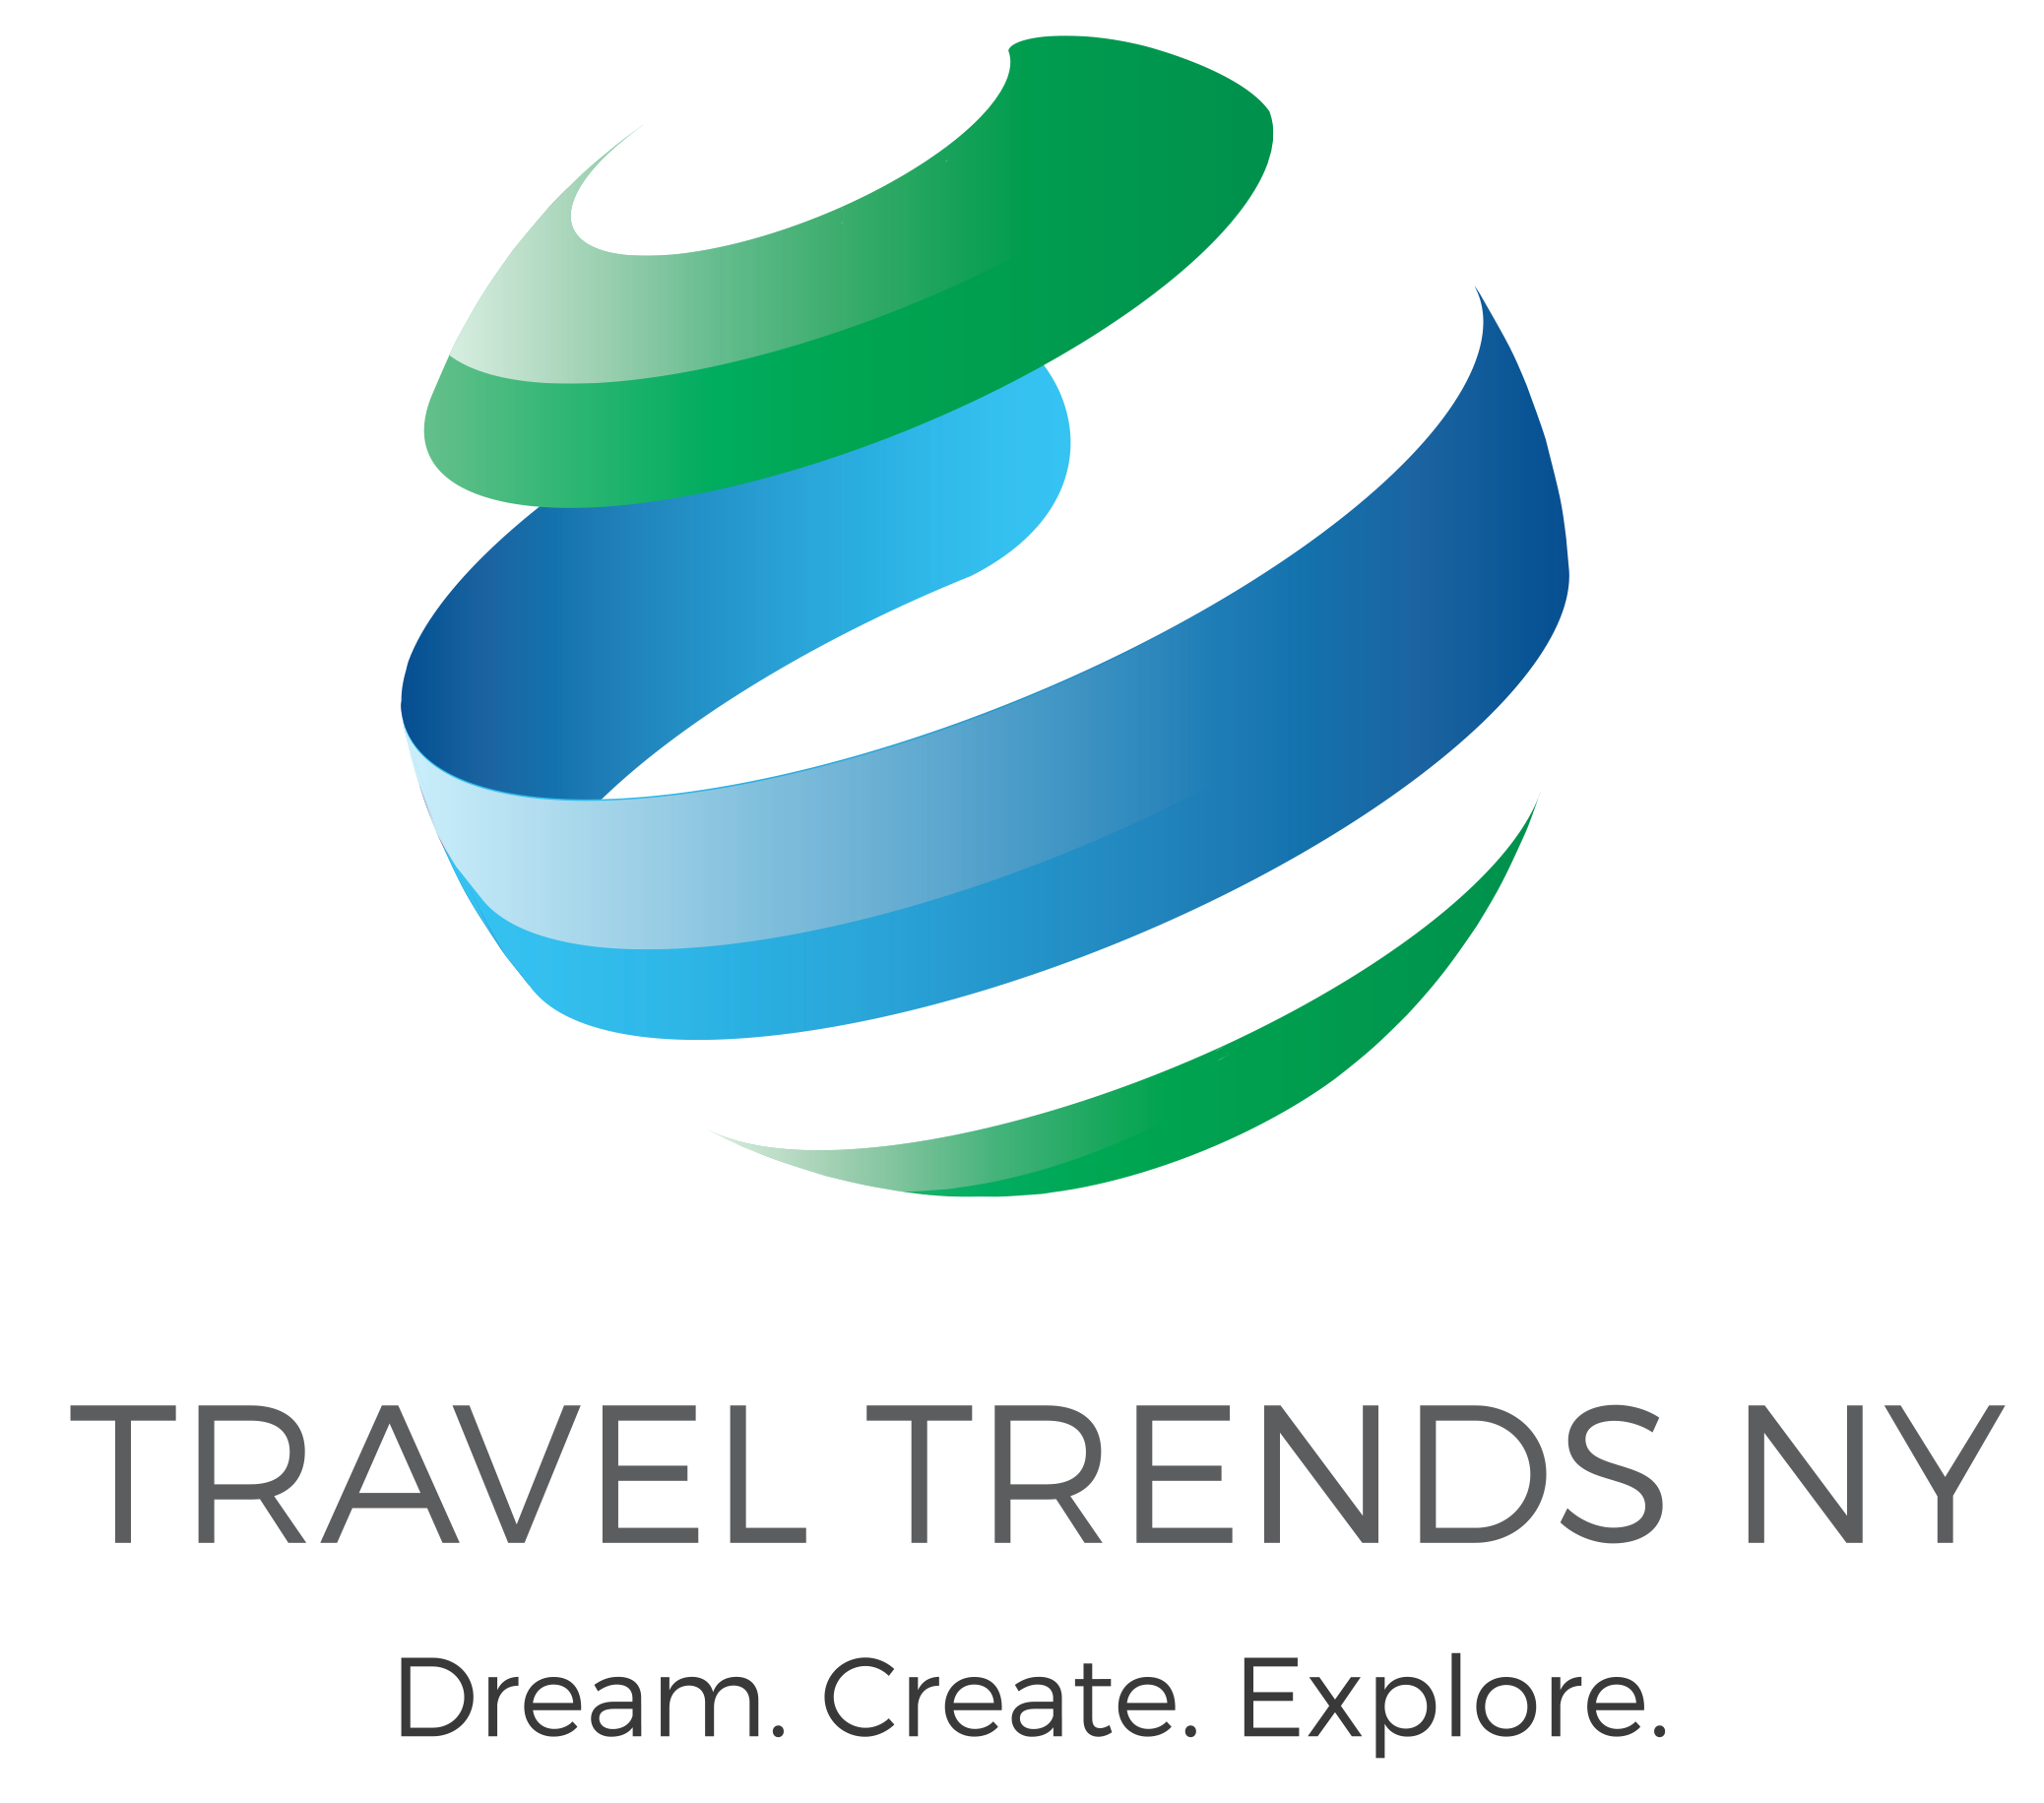 Travel Trends of Hauppauge